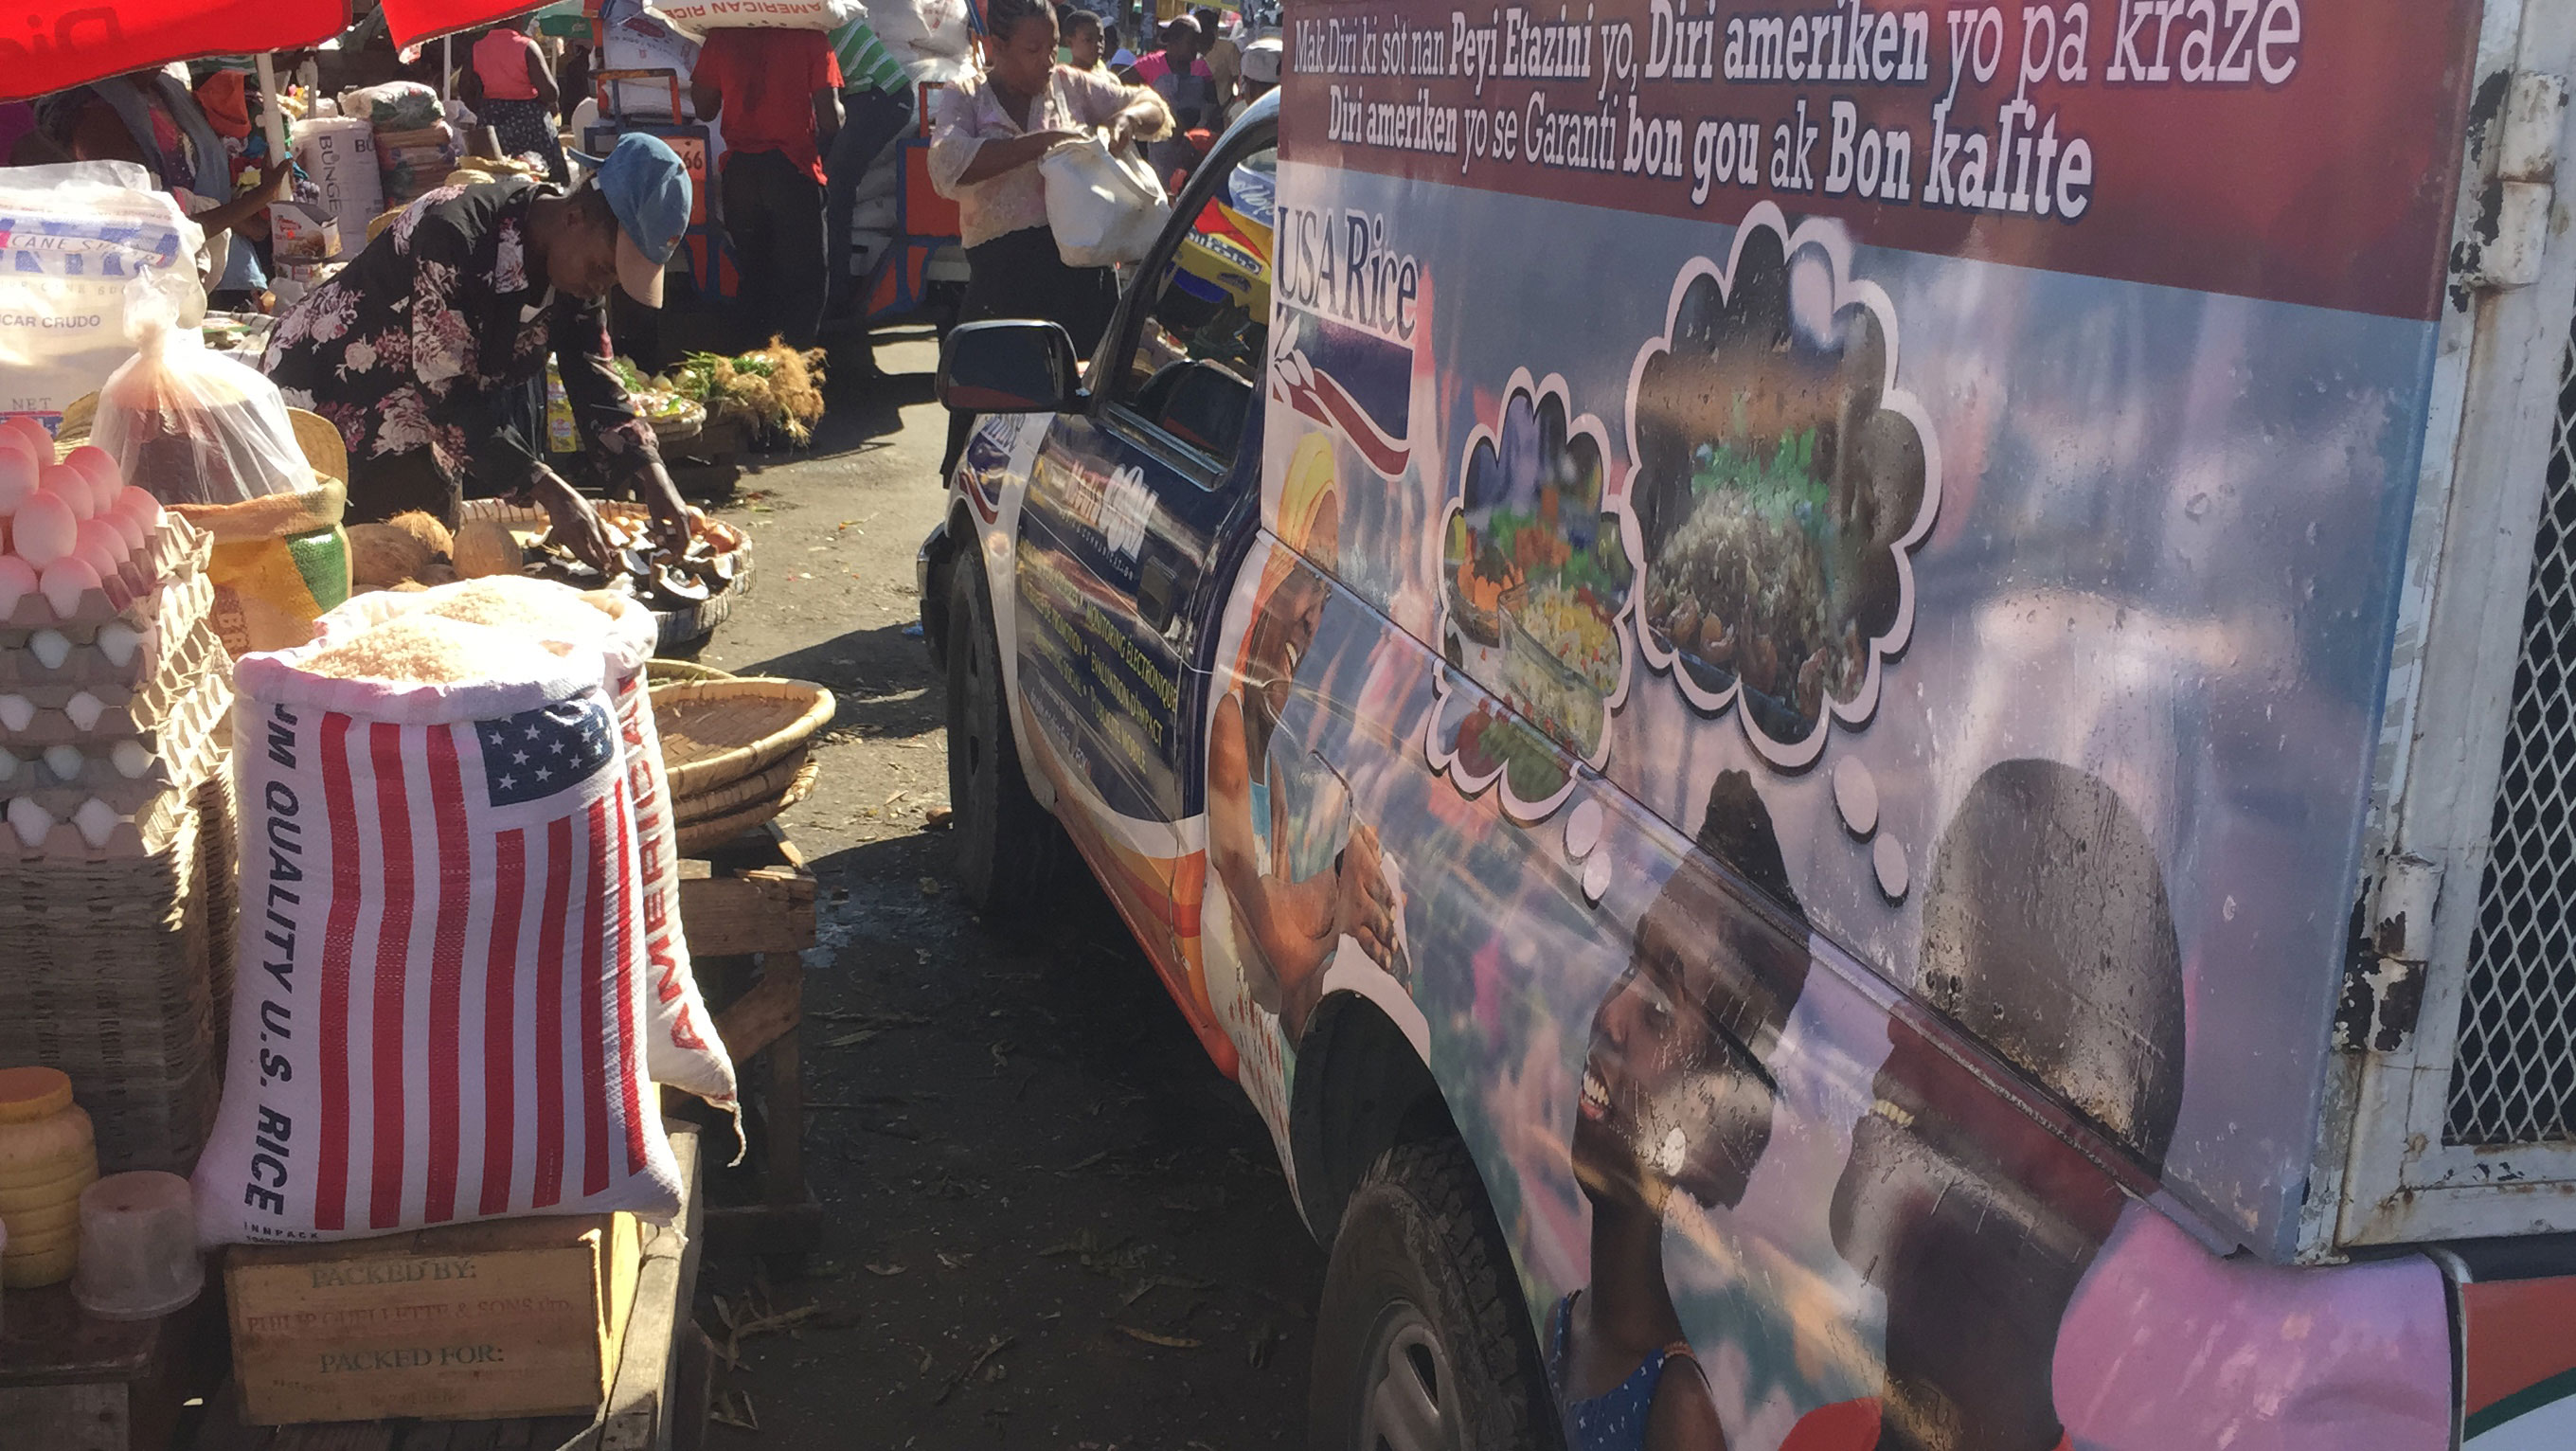 USA Rice Food Truck Promotions in Haiti